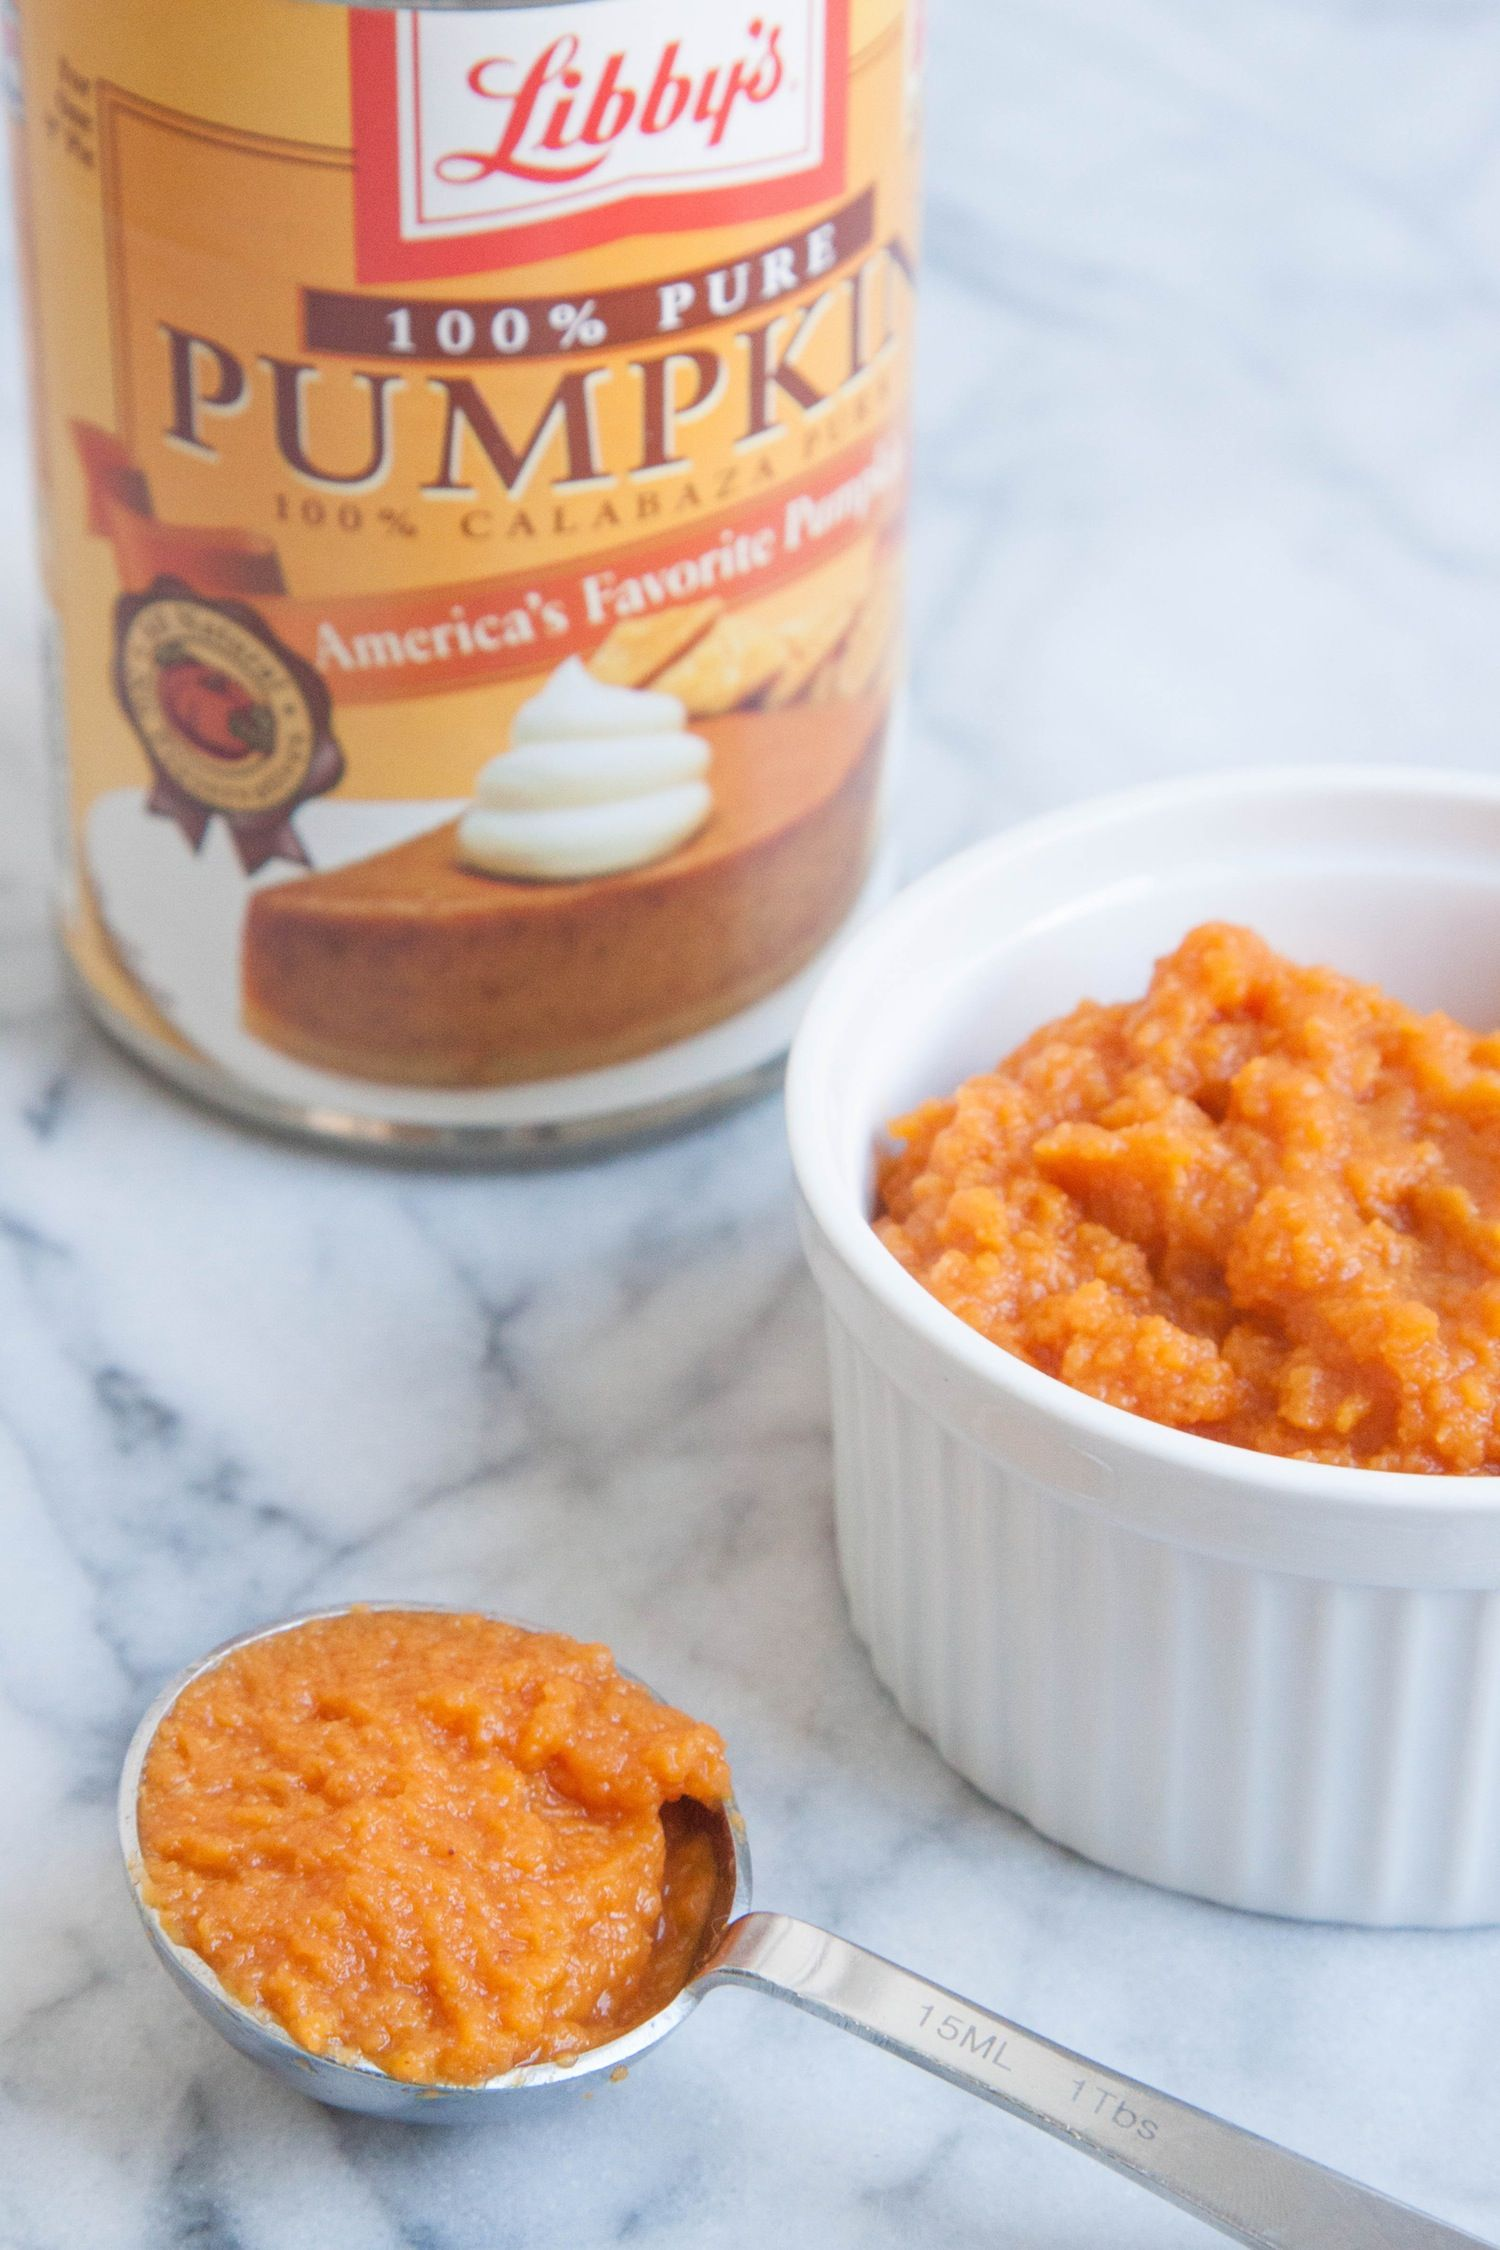 10 Smart Ways to Use Leftover Canned Pumpkin Purée